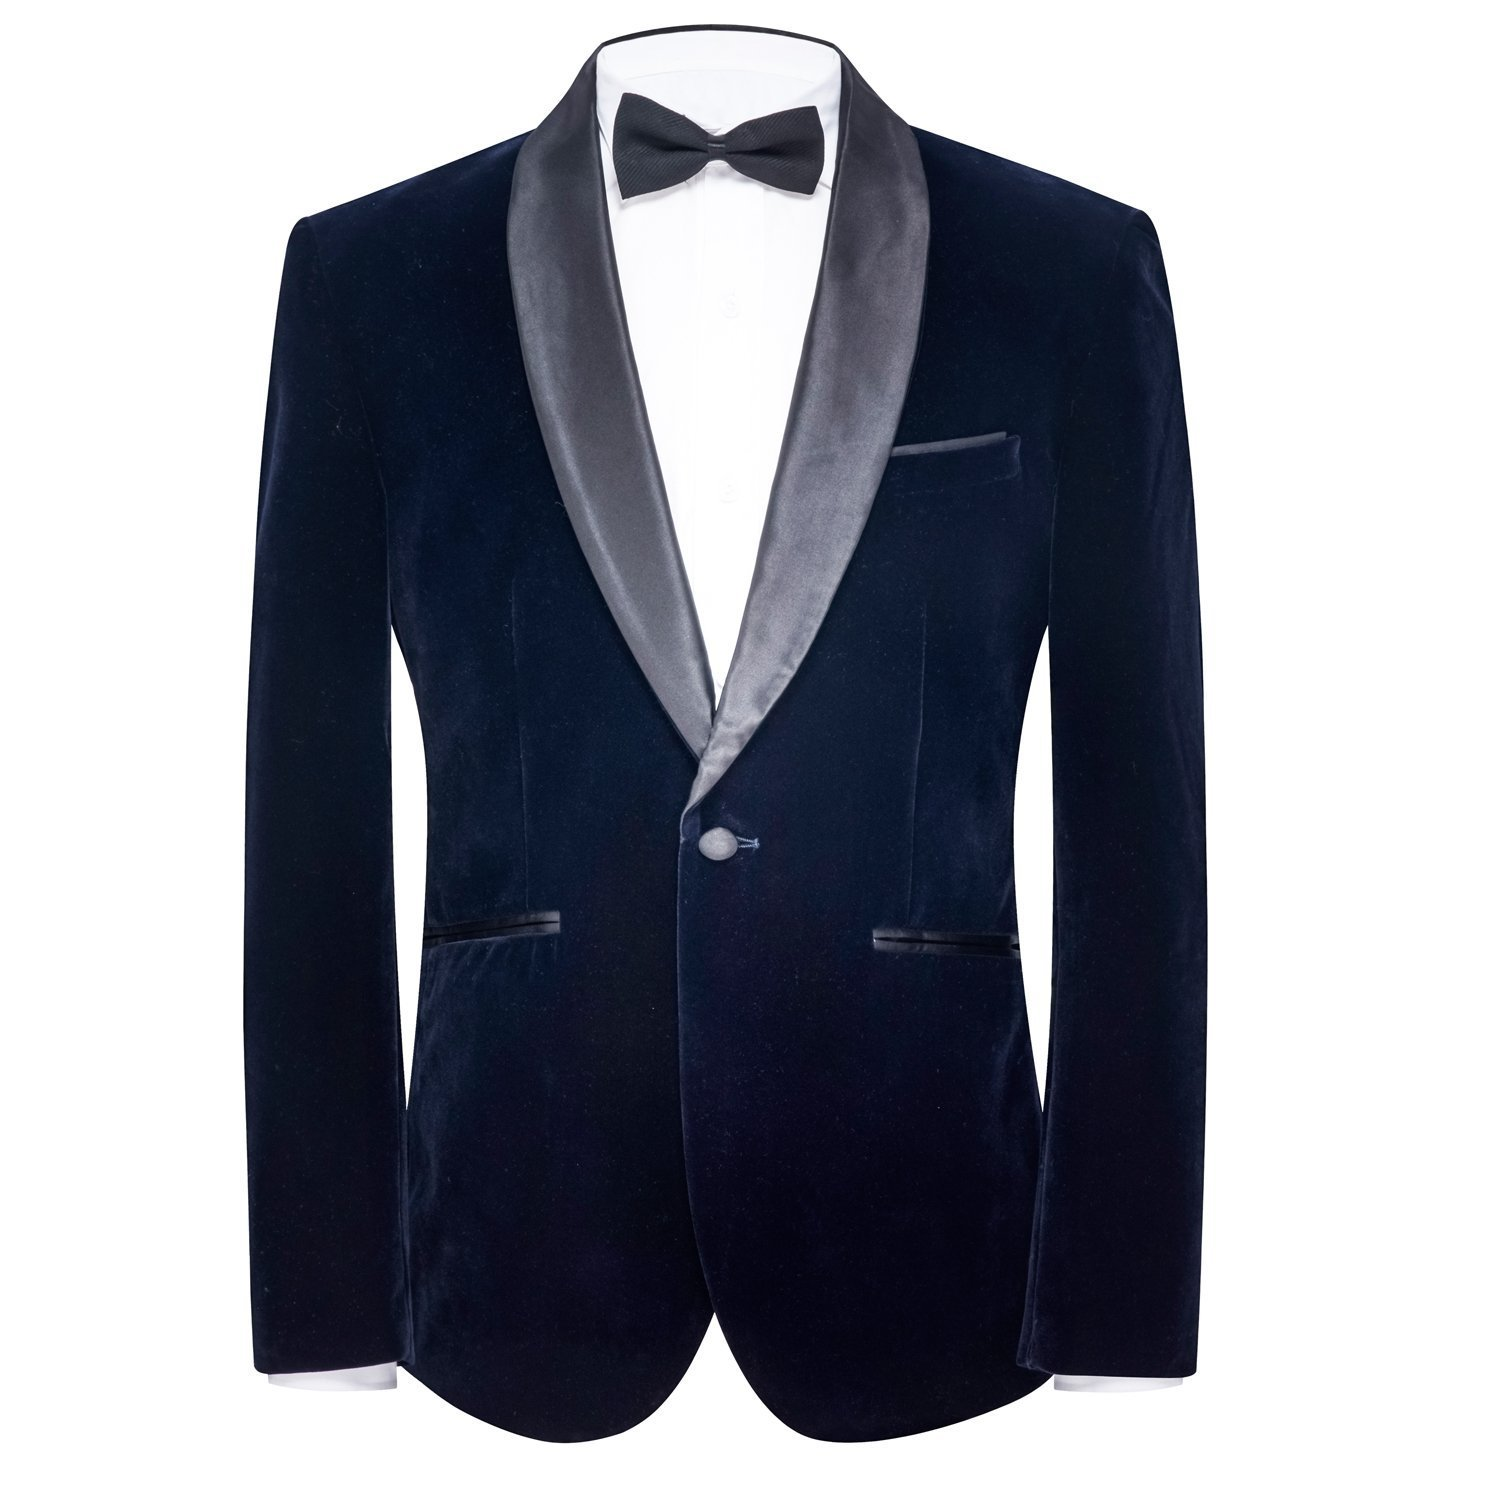 60fb2c71ef51 It is comfortable, softer, smoother, easier to wash and keep the shape. One  piece Suit Jacket, Dry clean recommended. Single breasted jacket, One  button, ...